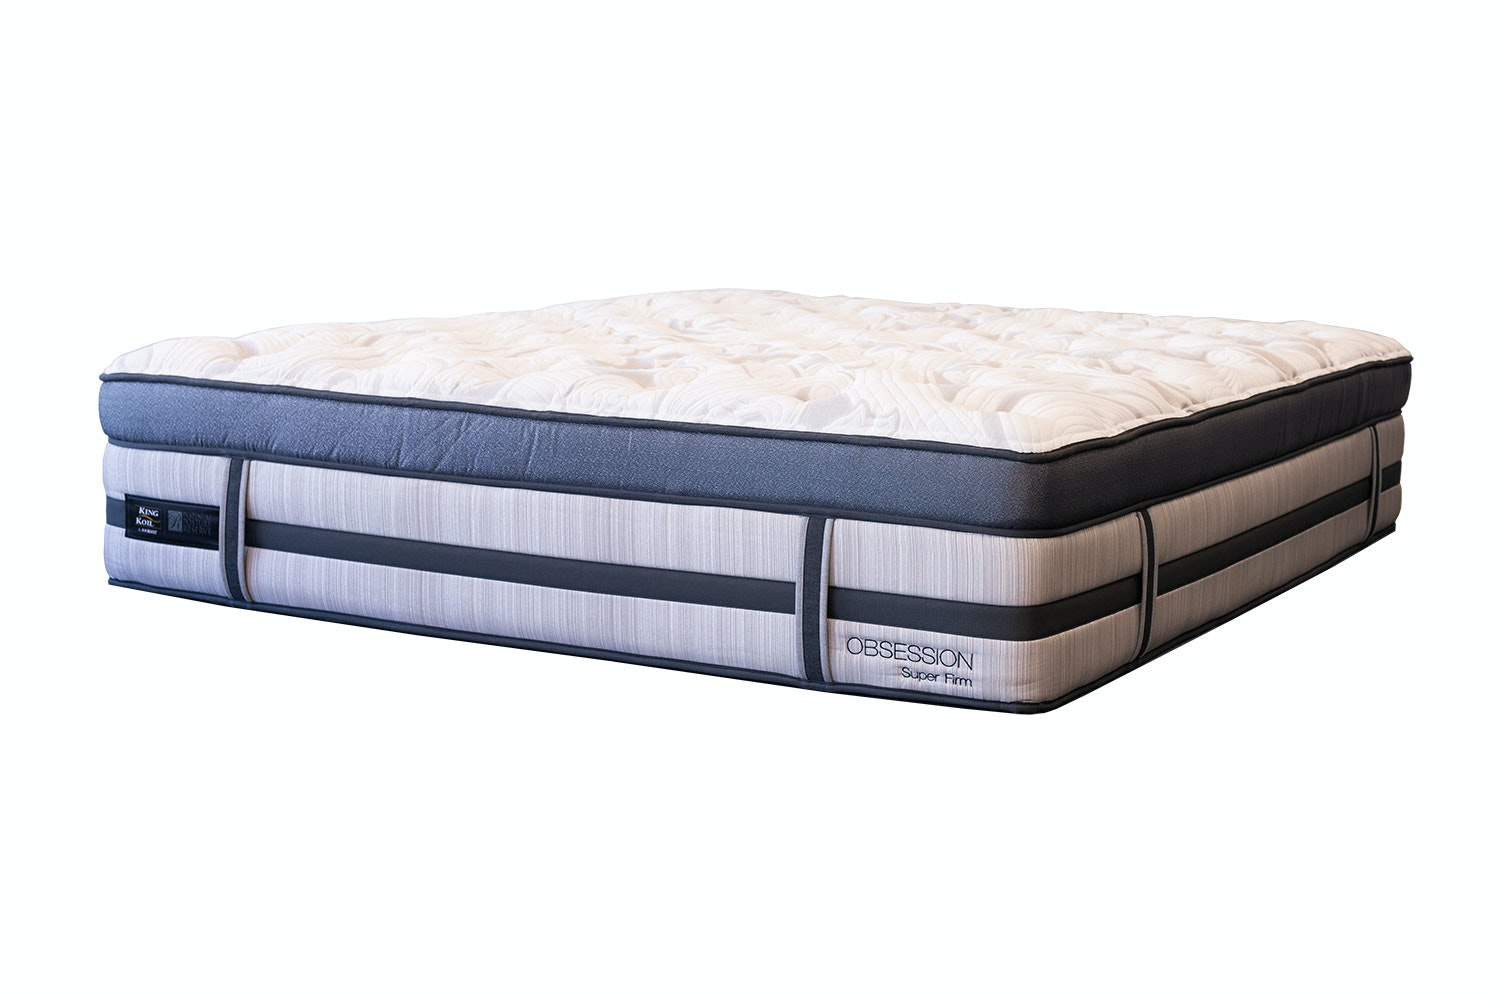 Obsession Super Firm Super King Mattress by King Koil